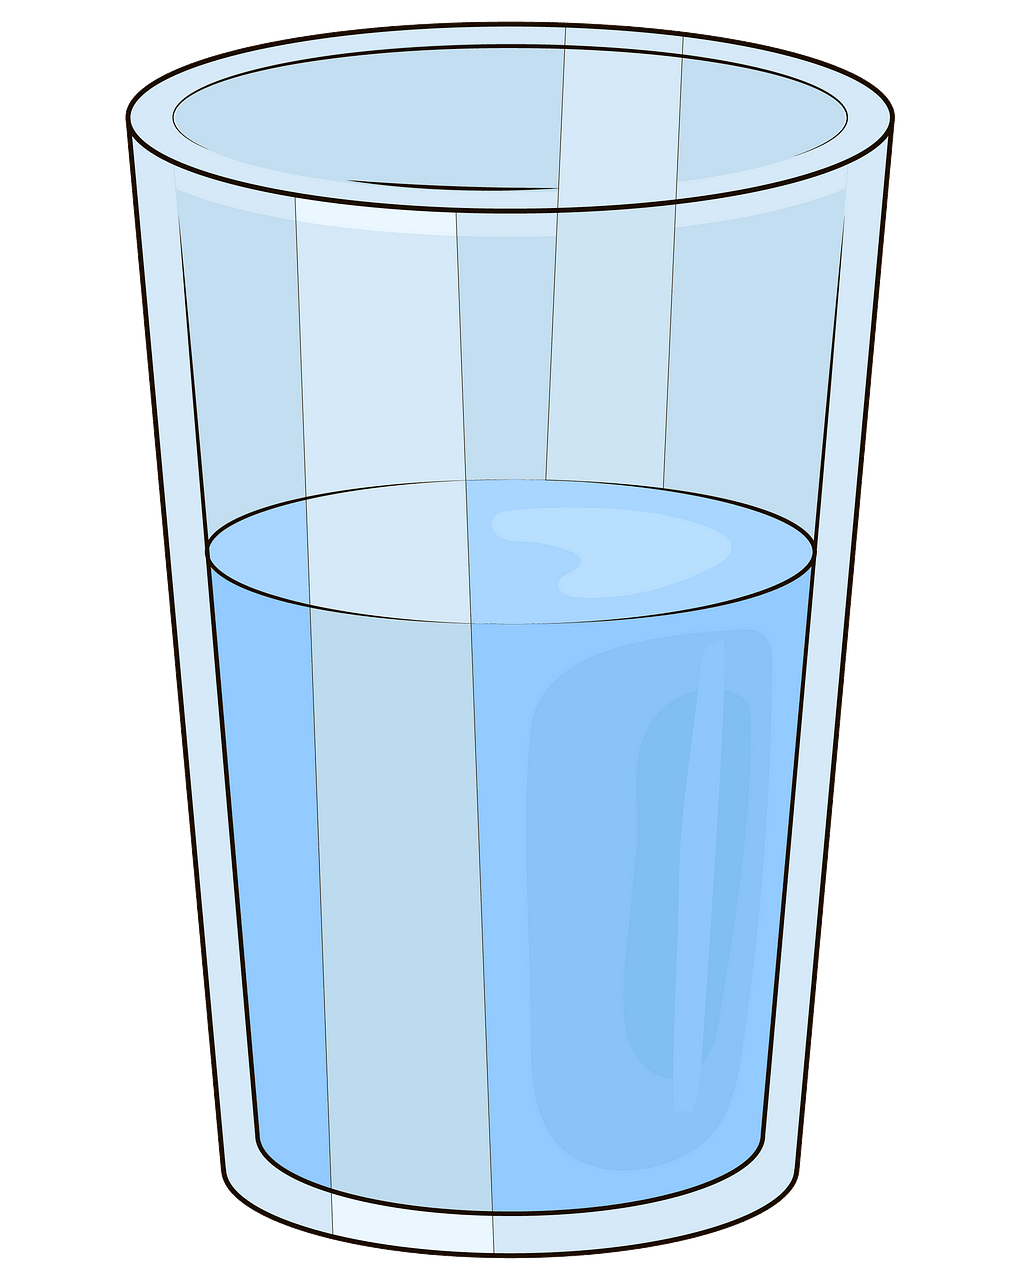 Glass of water clipart. Free download..